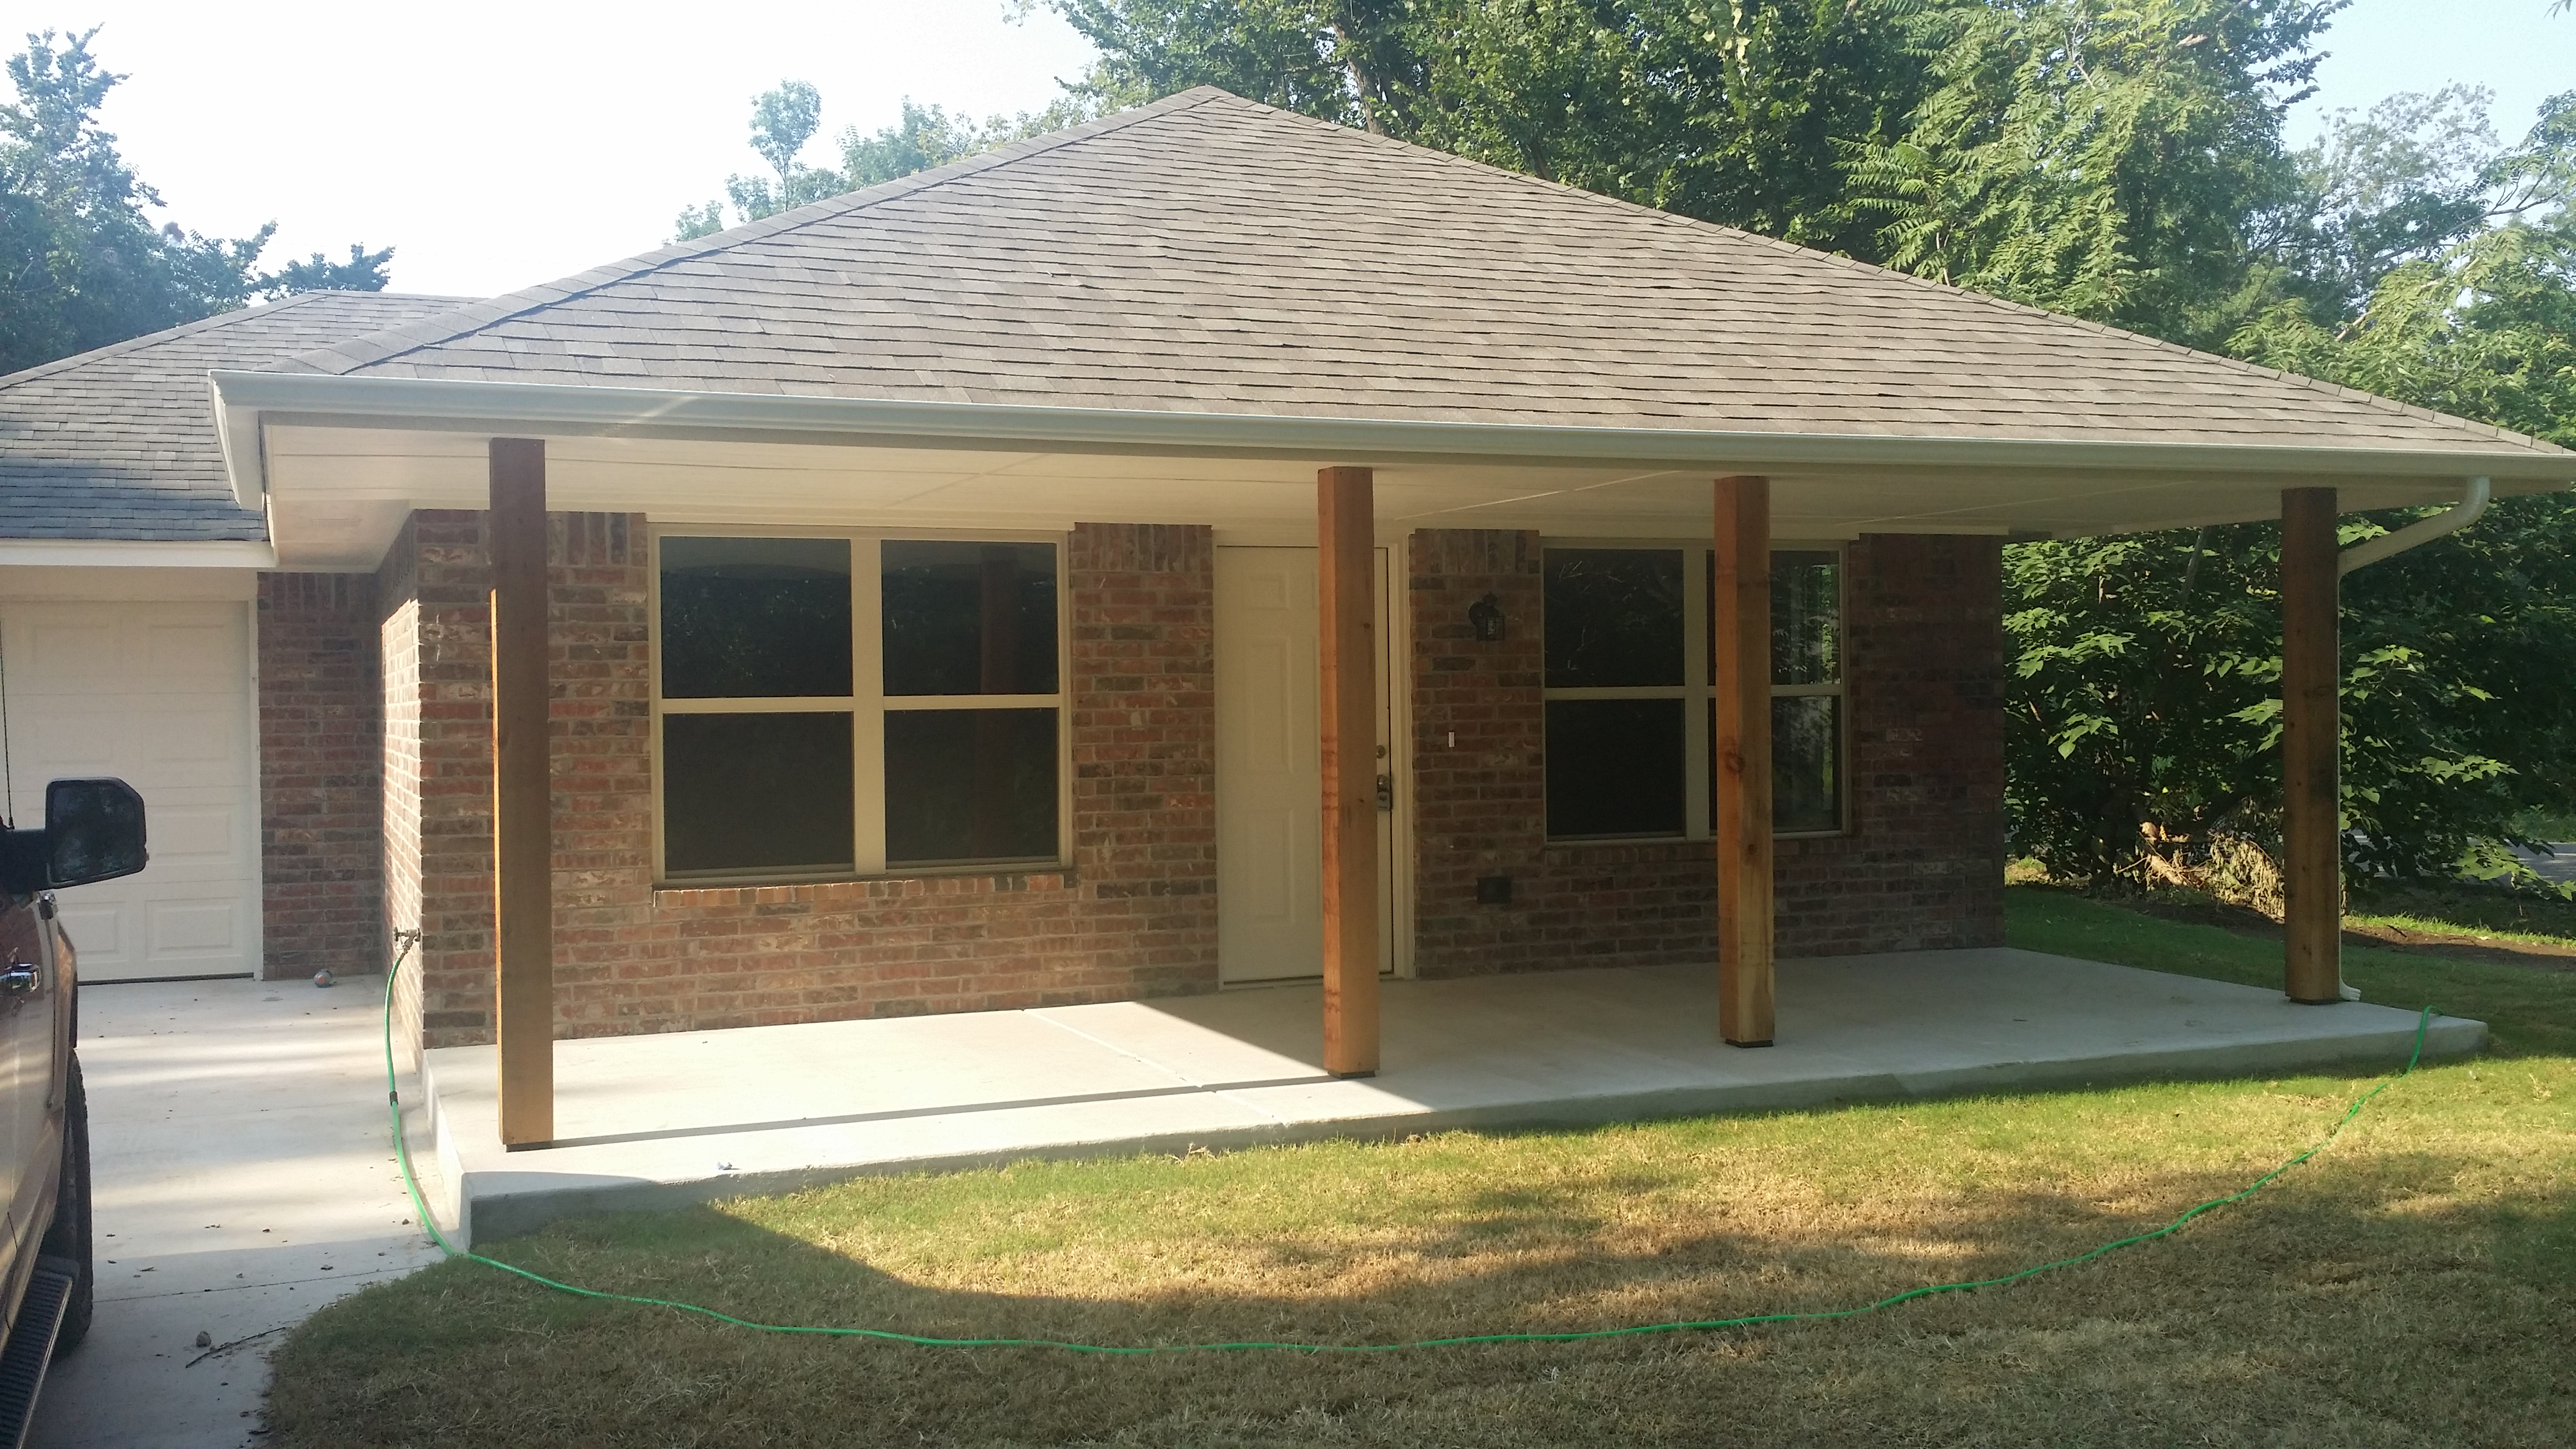 For Rent: 804 N. Evans, El Reno, OK